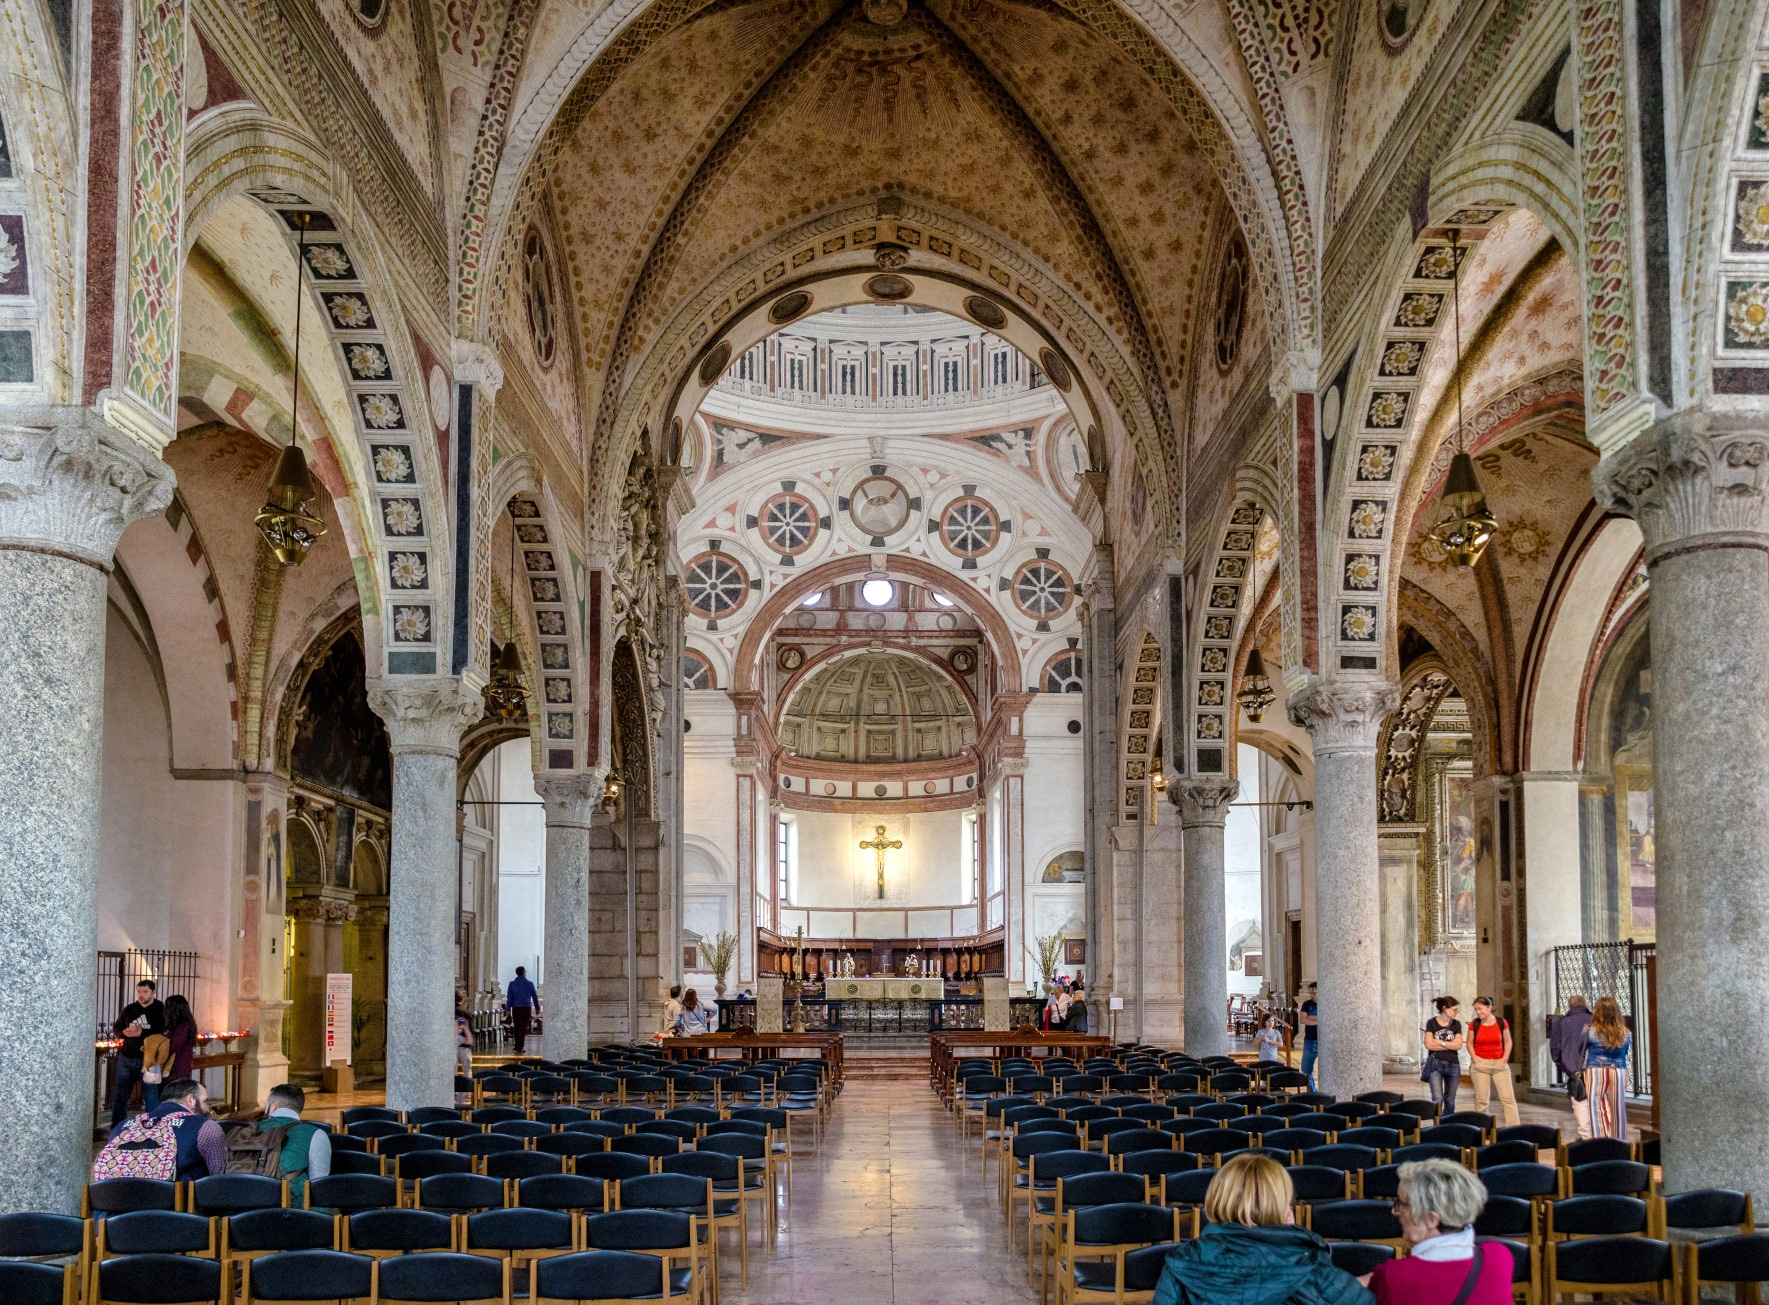 Interior of Church Santa Maria delle Grazie on April 14, 2018 in Milan